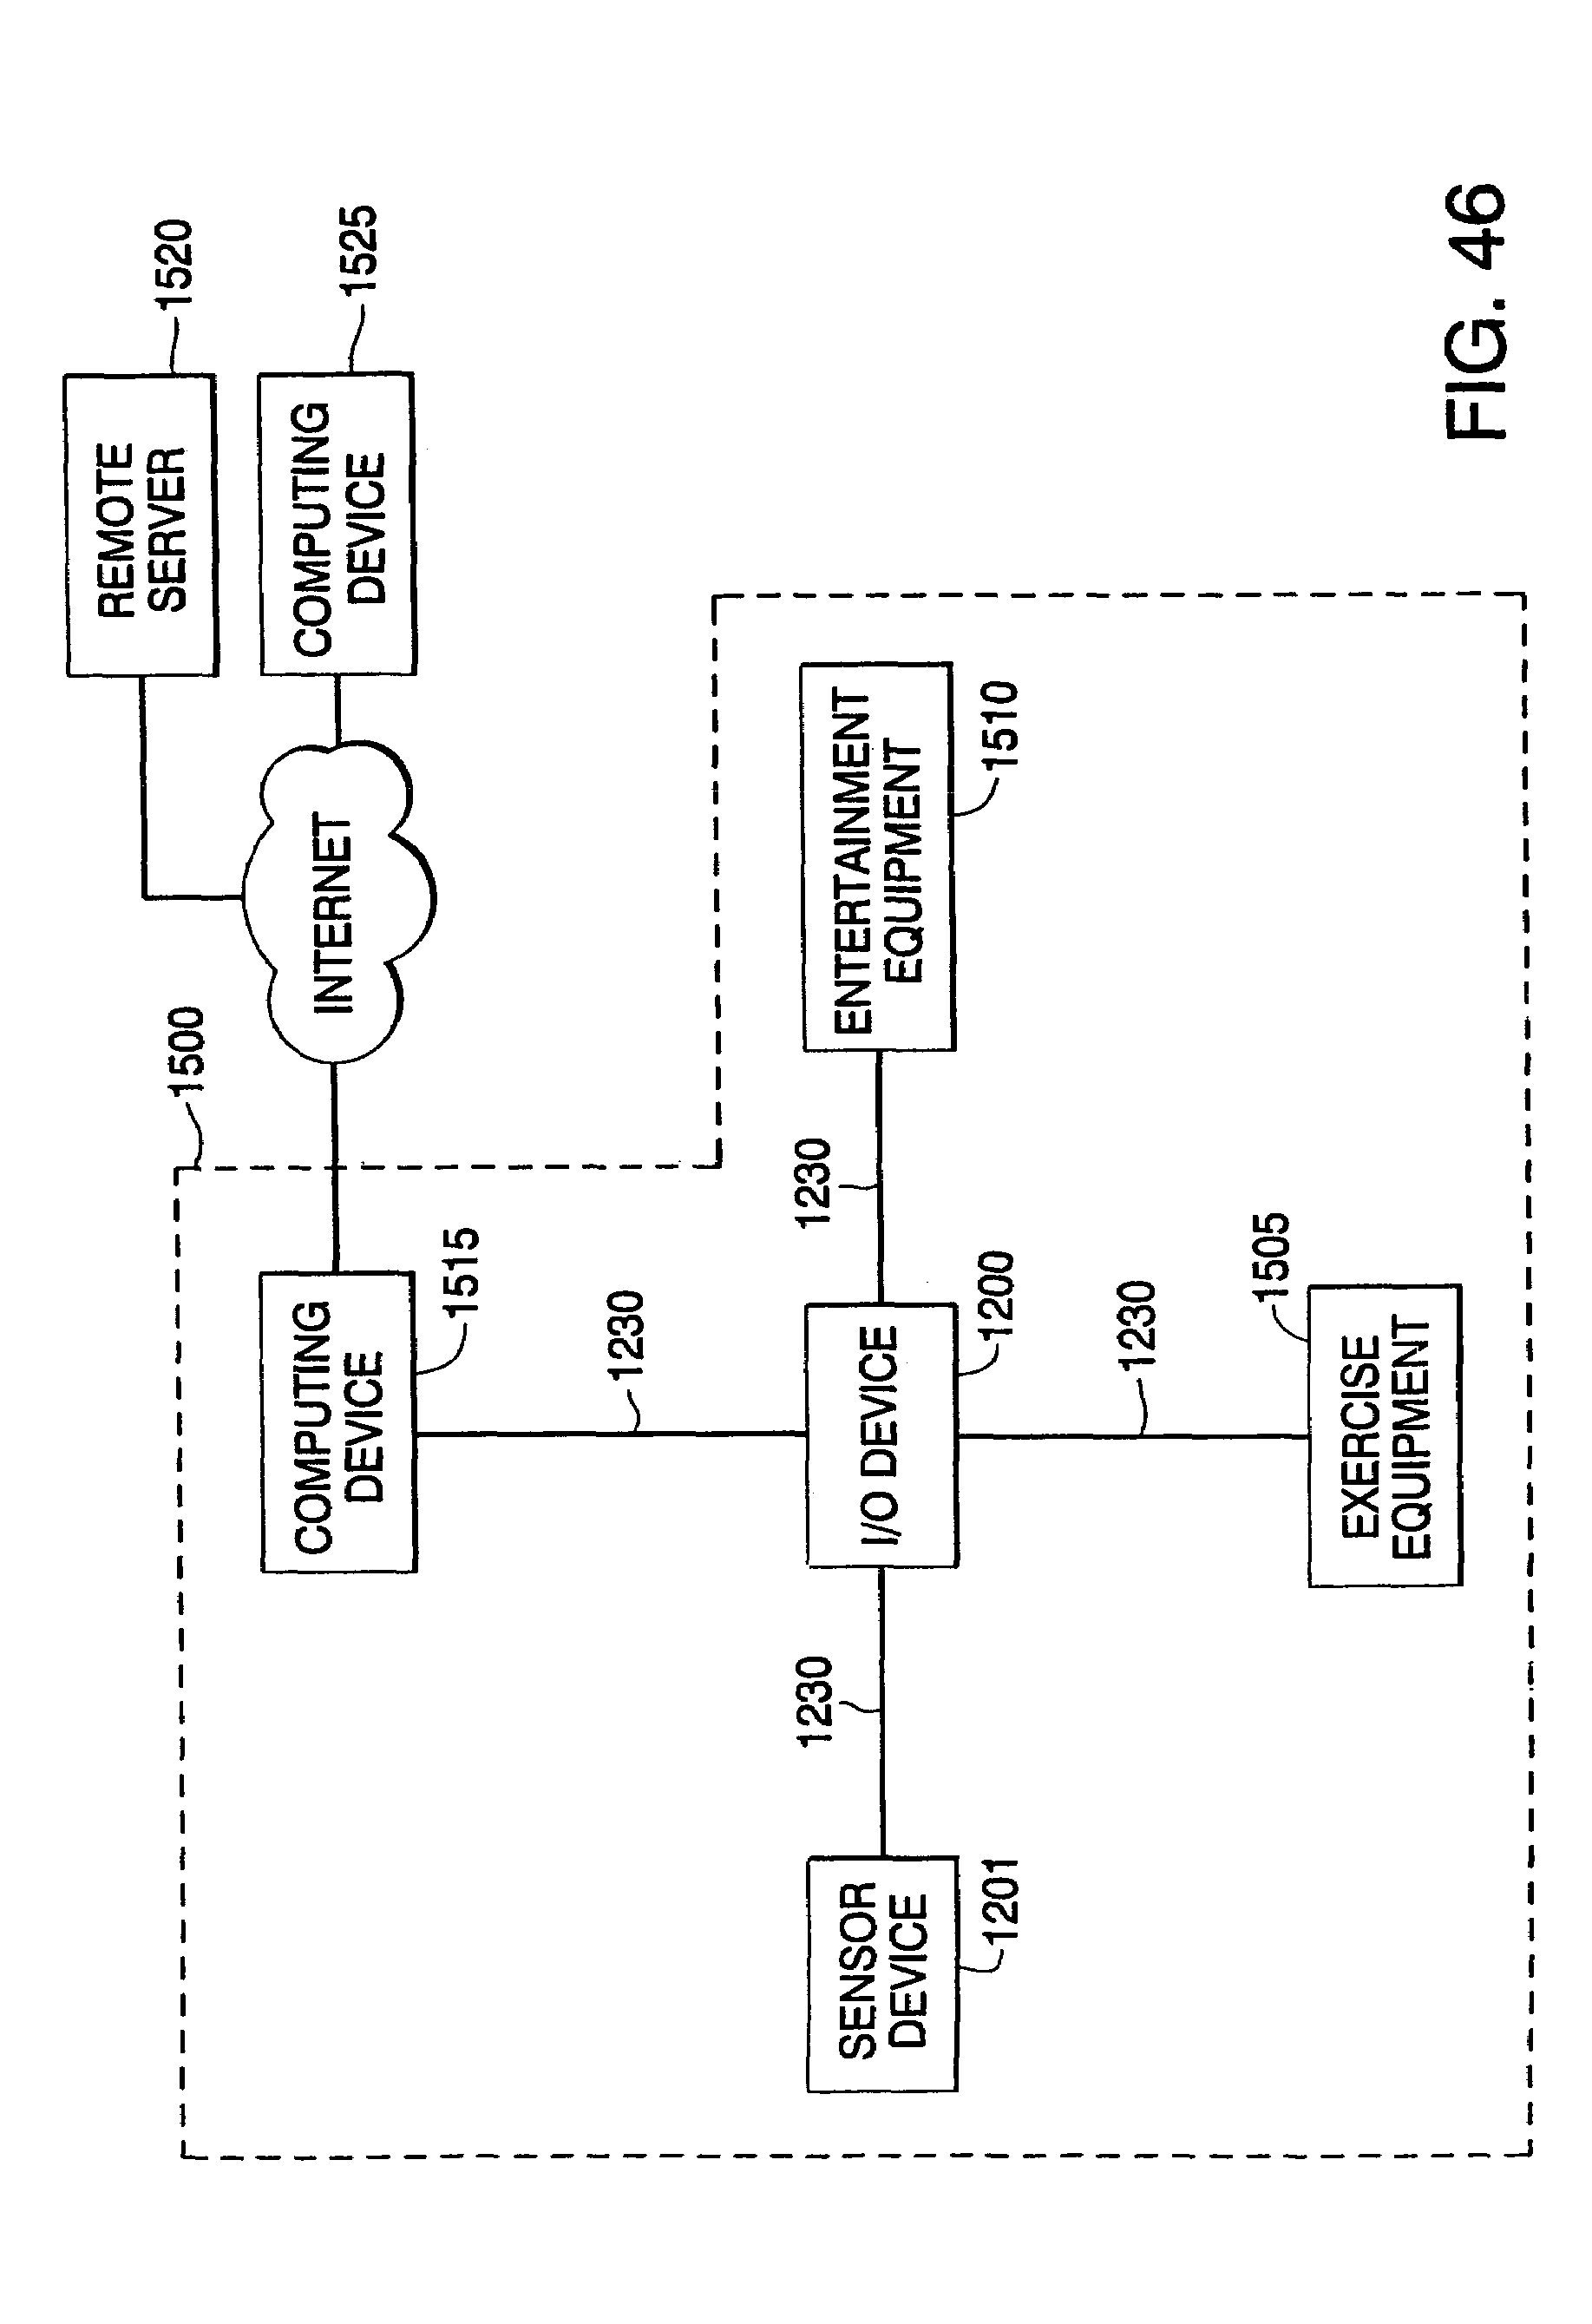 Patent Us 7285090 B2 Emg Block Diagram As Well Sensor Lifier Circuit Piezo On Capacitive Litigations